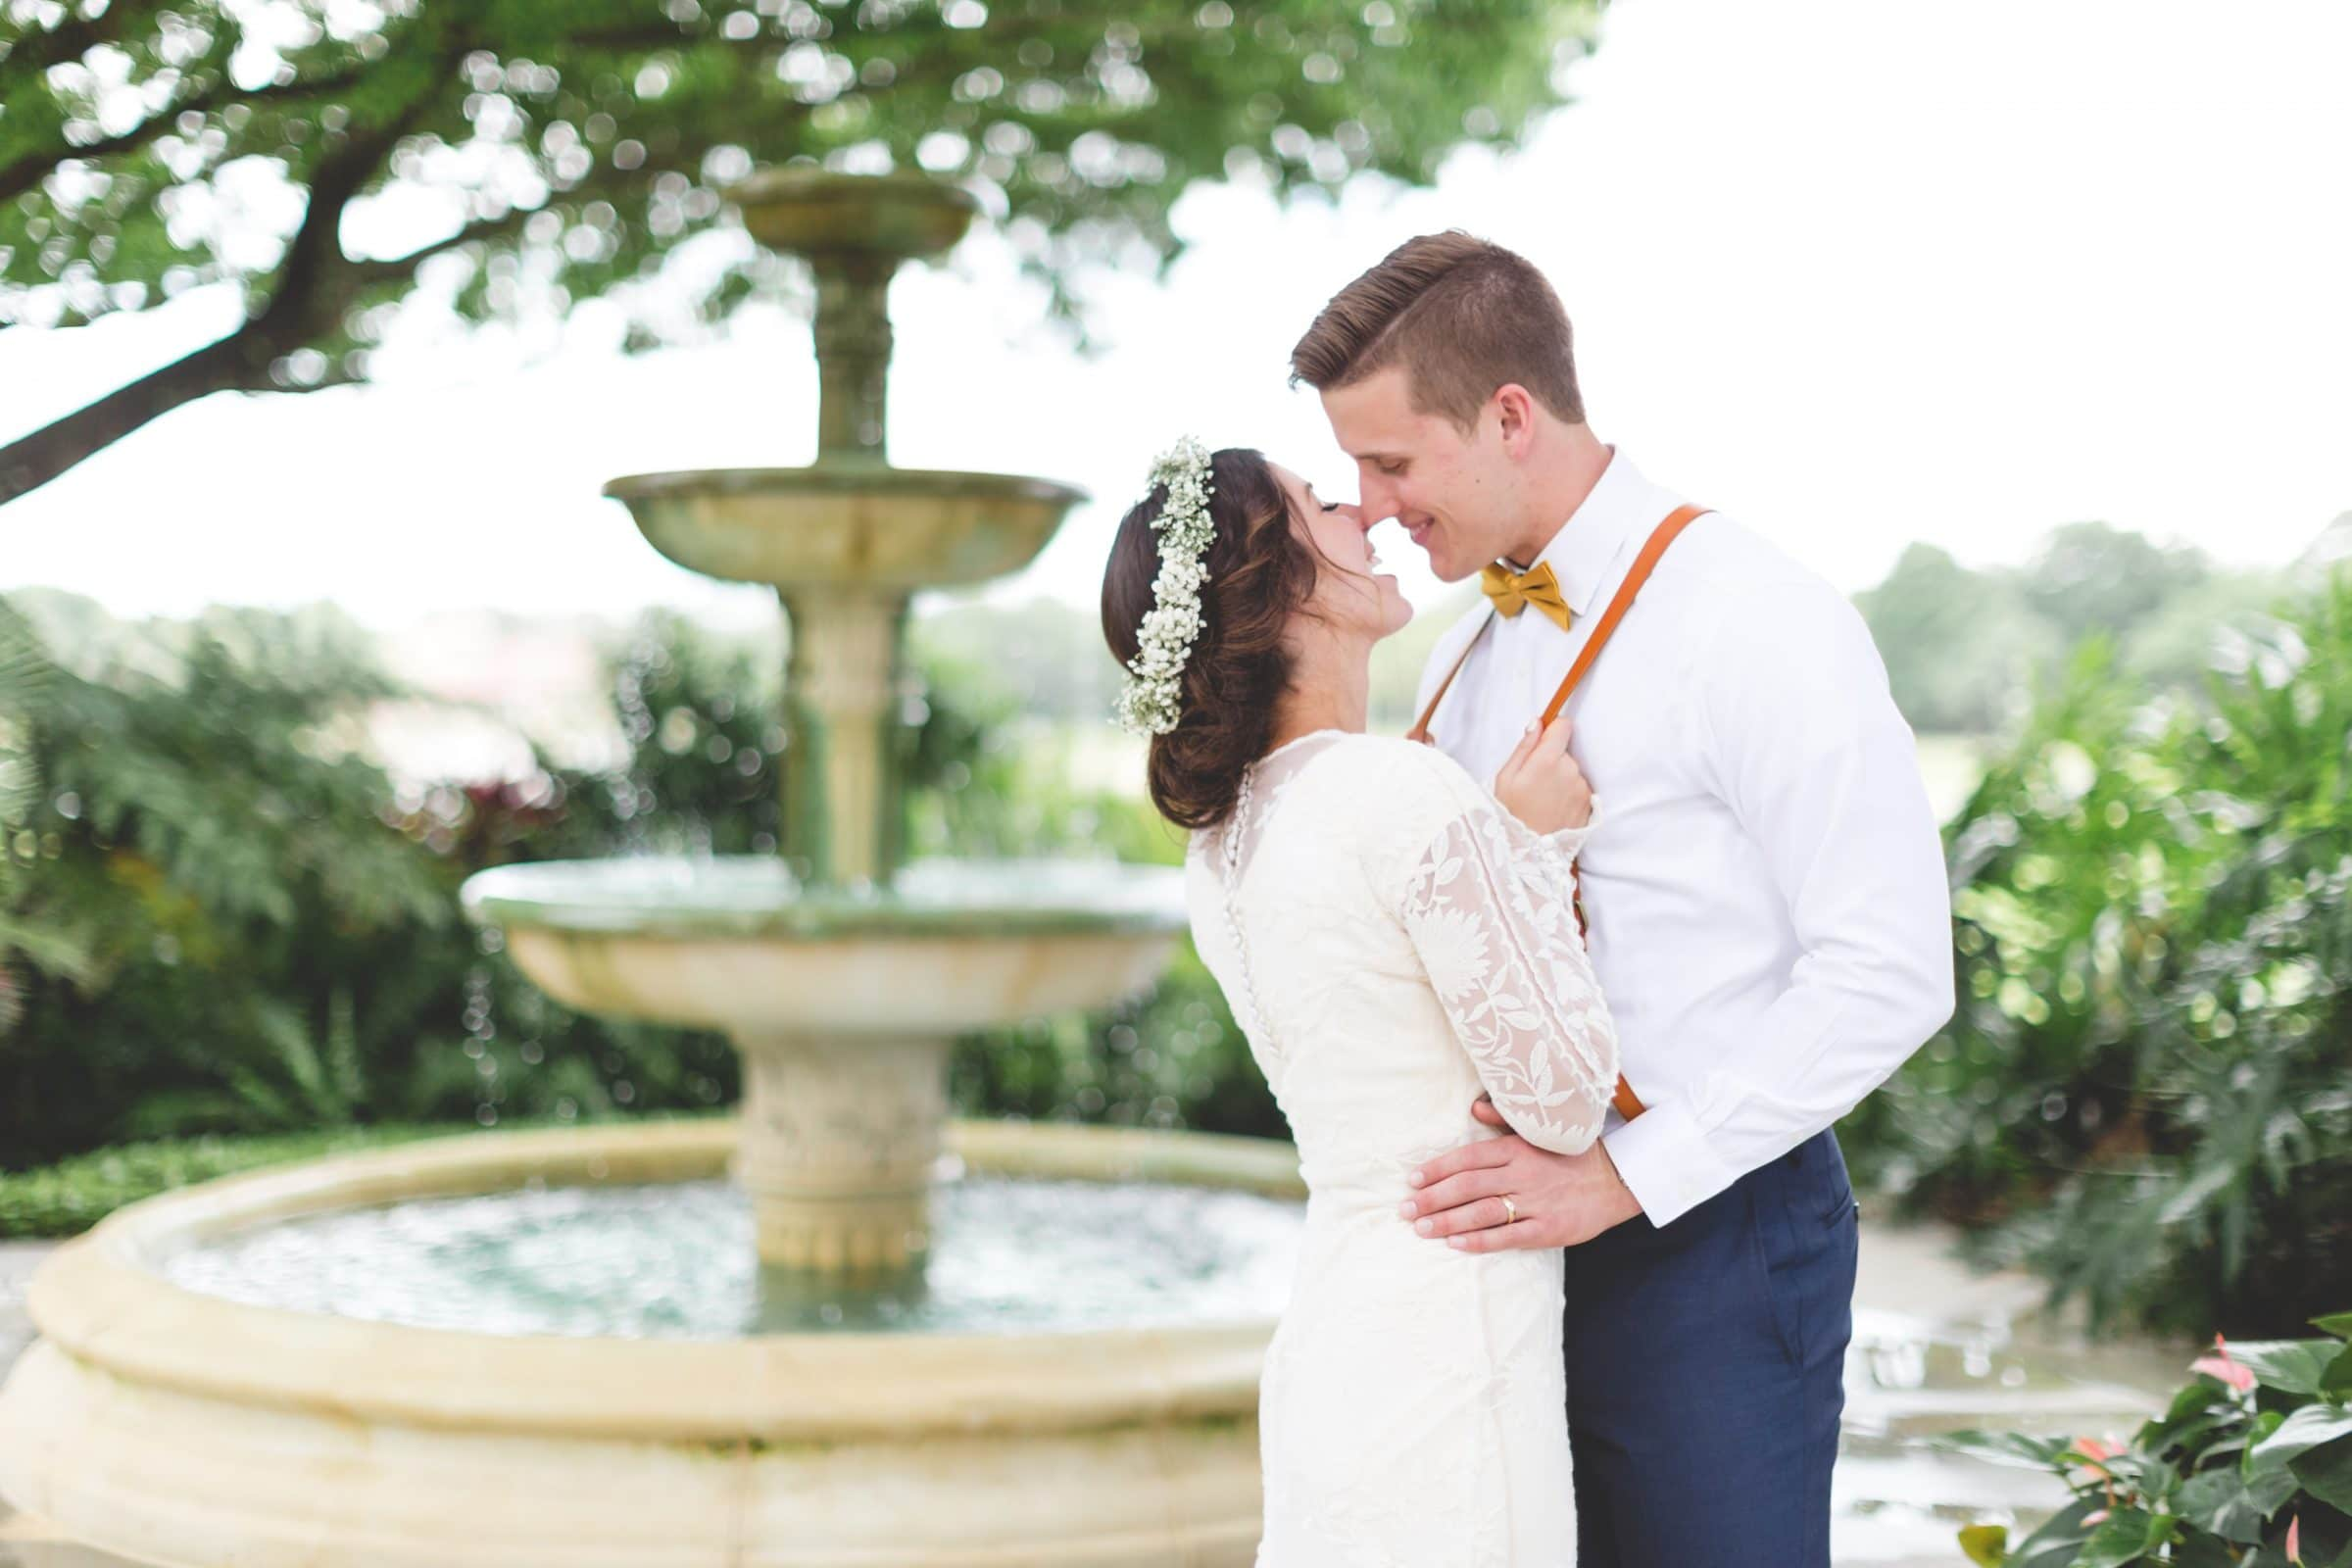 Boho bride and groom in front of vintage fountain narrowing down wedding venue search